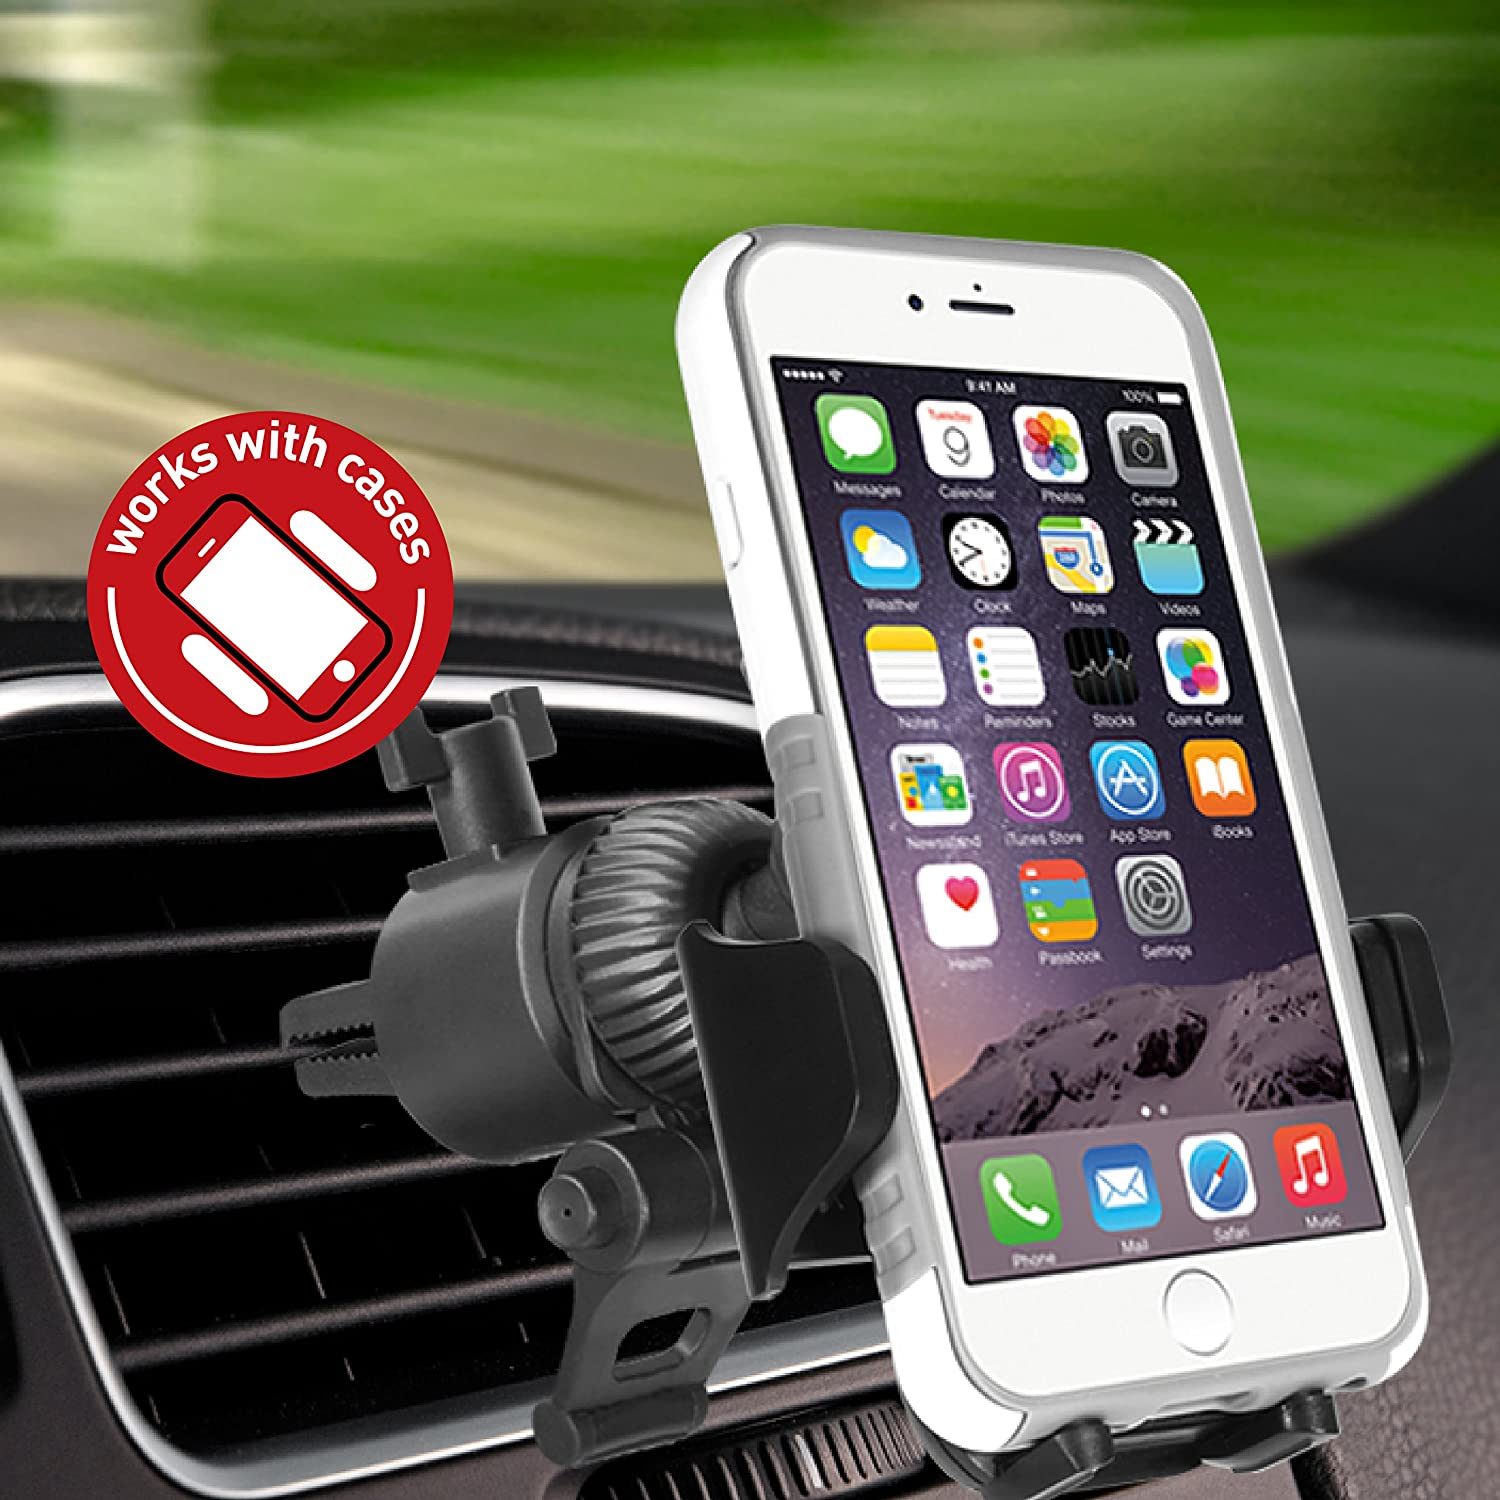 SE 6s 6 Samsung Galaxy S9 S9 Macally Universal Car Air Vent Phone Holder Mount with Super Strong AC Clip for Apple iPhone Xs XS Max XR X 8 8 Plus 7 7 S8 LG Nexus Sony Nokia Moto Mobile Cell Phones Mace Group Inc Macally Peripherals MVENTMOUNT